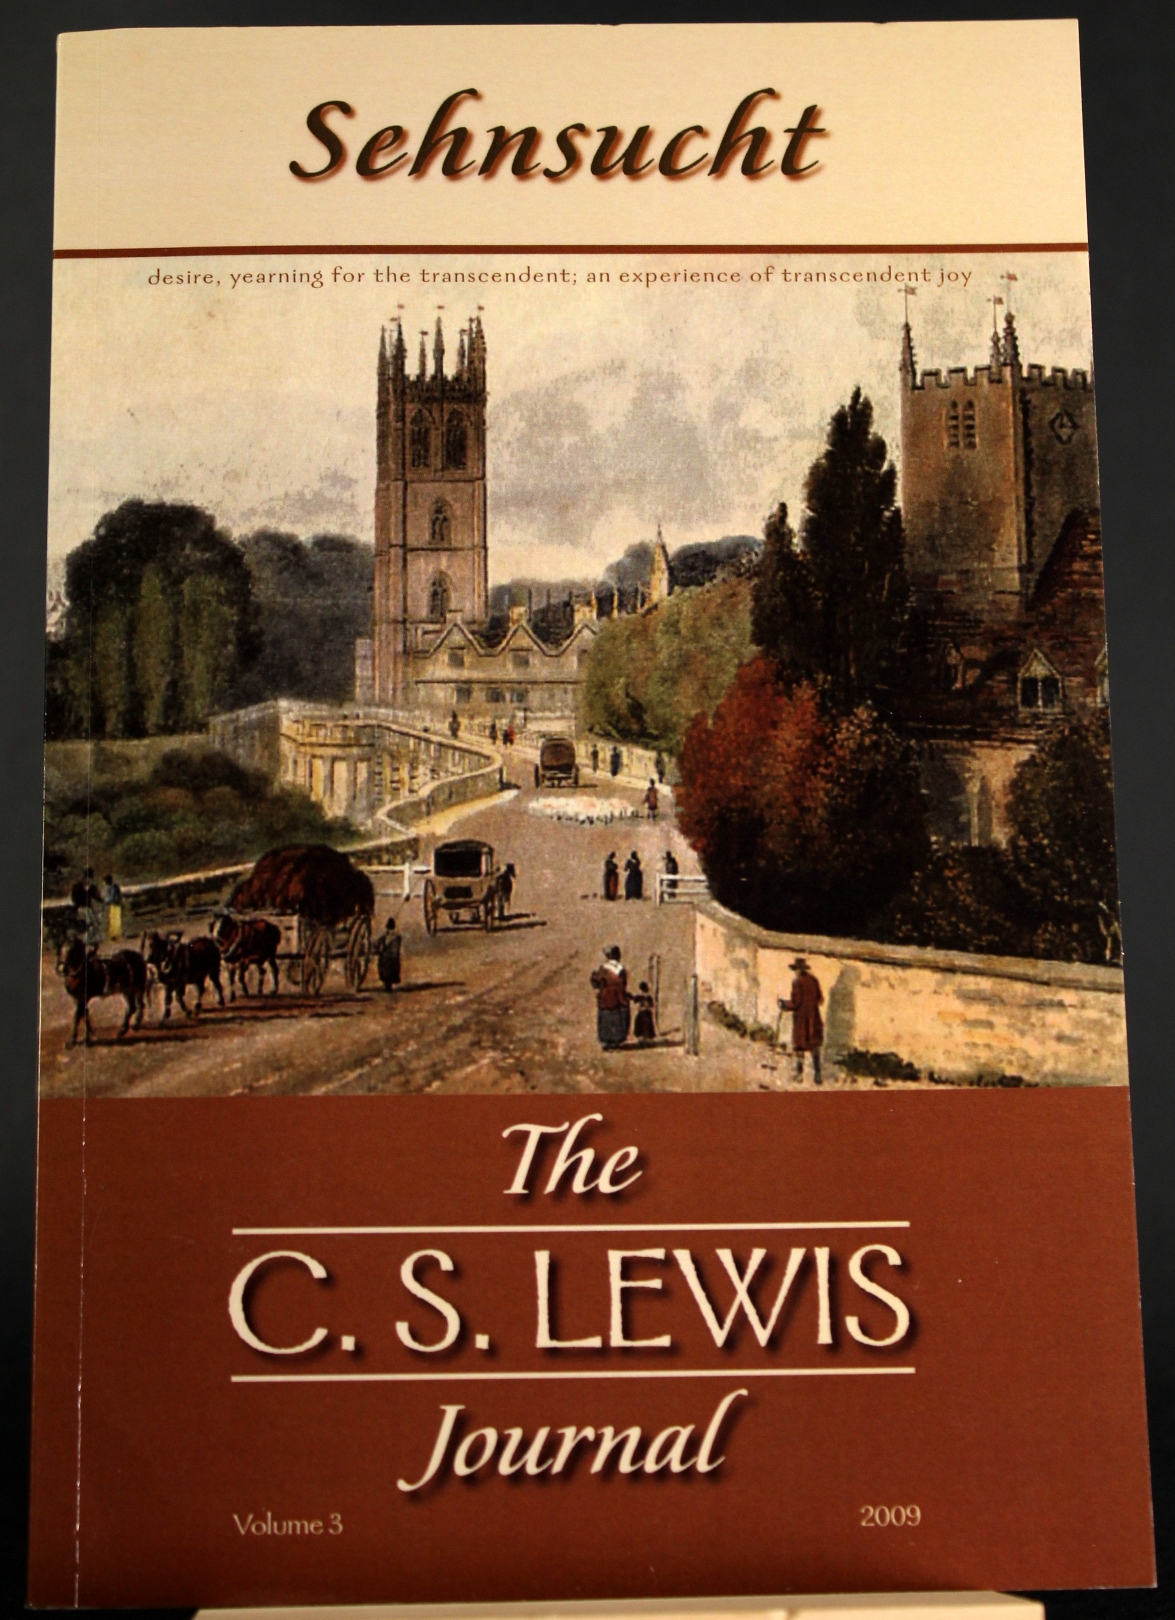 Image for Sehnsucht: The C. S. Lewis Journal, Volume 3 (Sehnsucht: C.S. Lewis Journal)